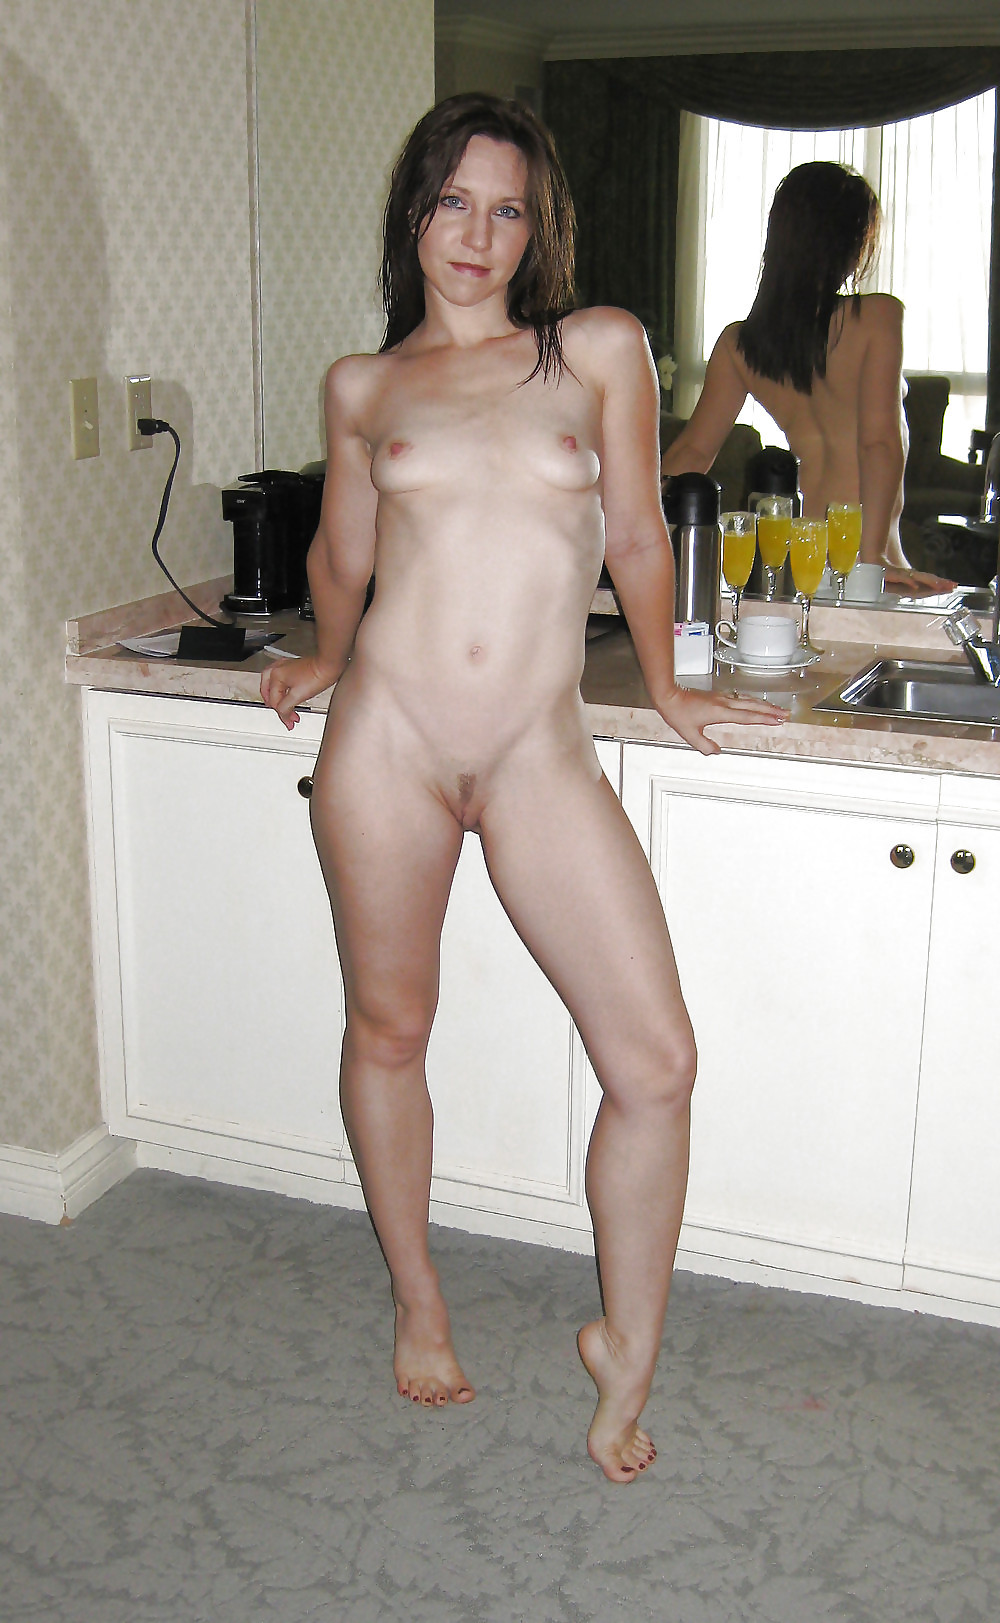 Tumblr voyeur naked wife in kitchen